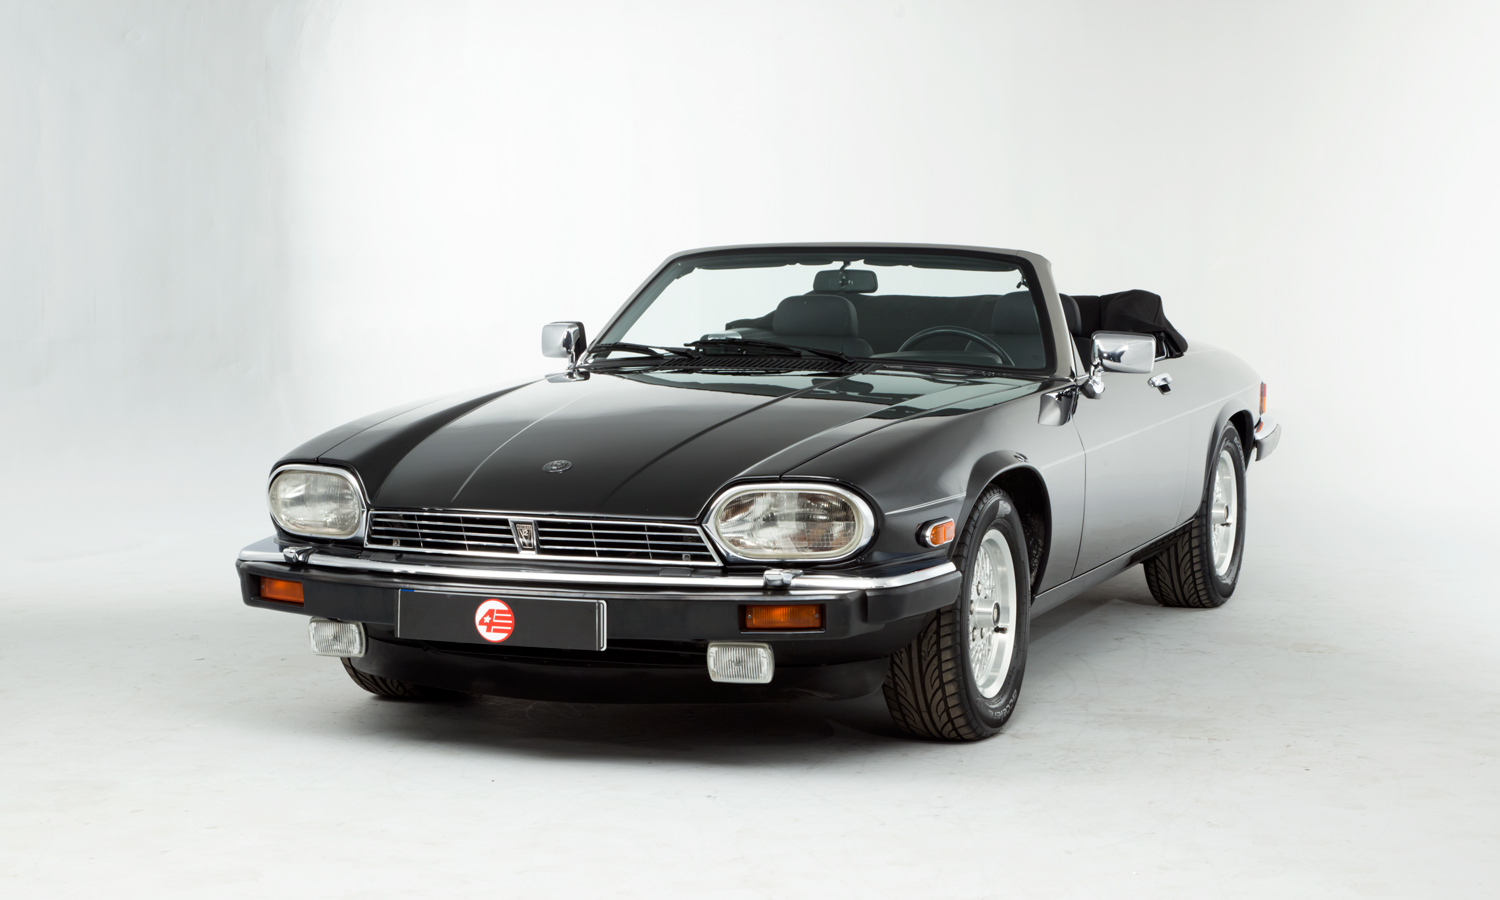 jaguar xjs v12 convertible lhd. Black Bedroom Furniture Sets. Home Design Ideas